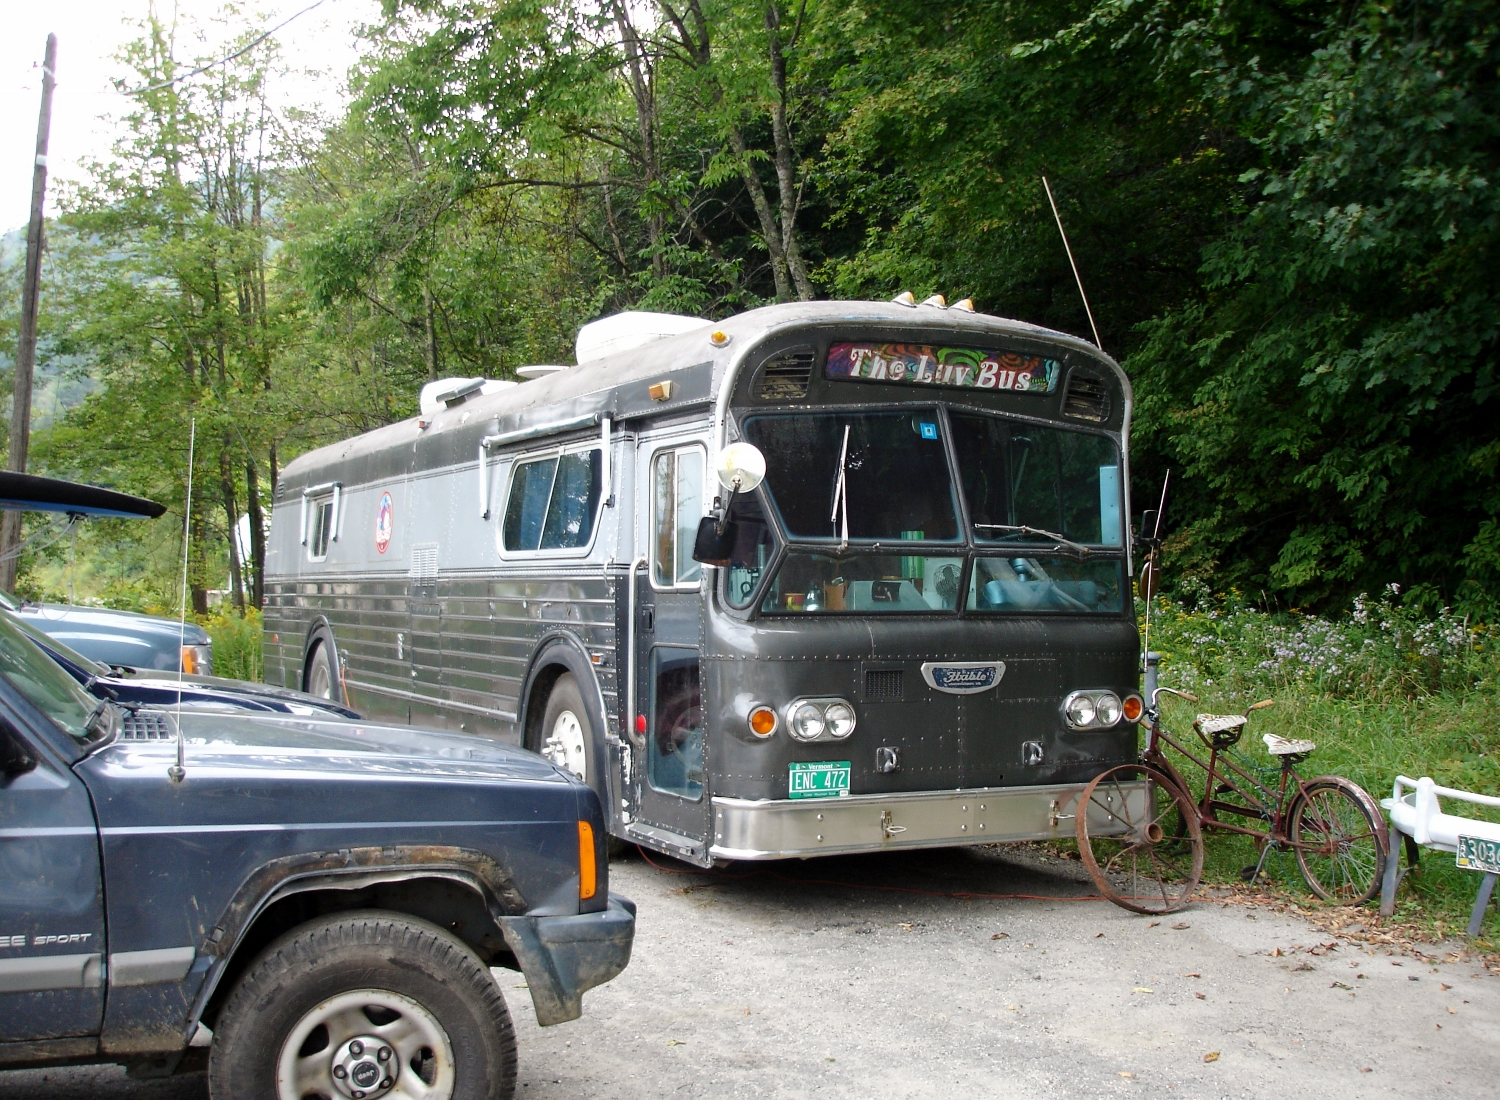 When Rick Redington & The Luv (with Heather Lynne) perform, they travel by Luv Bus.